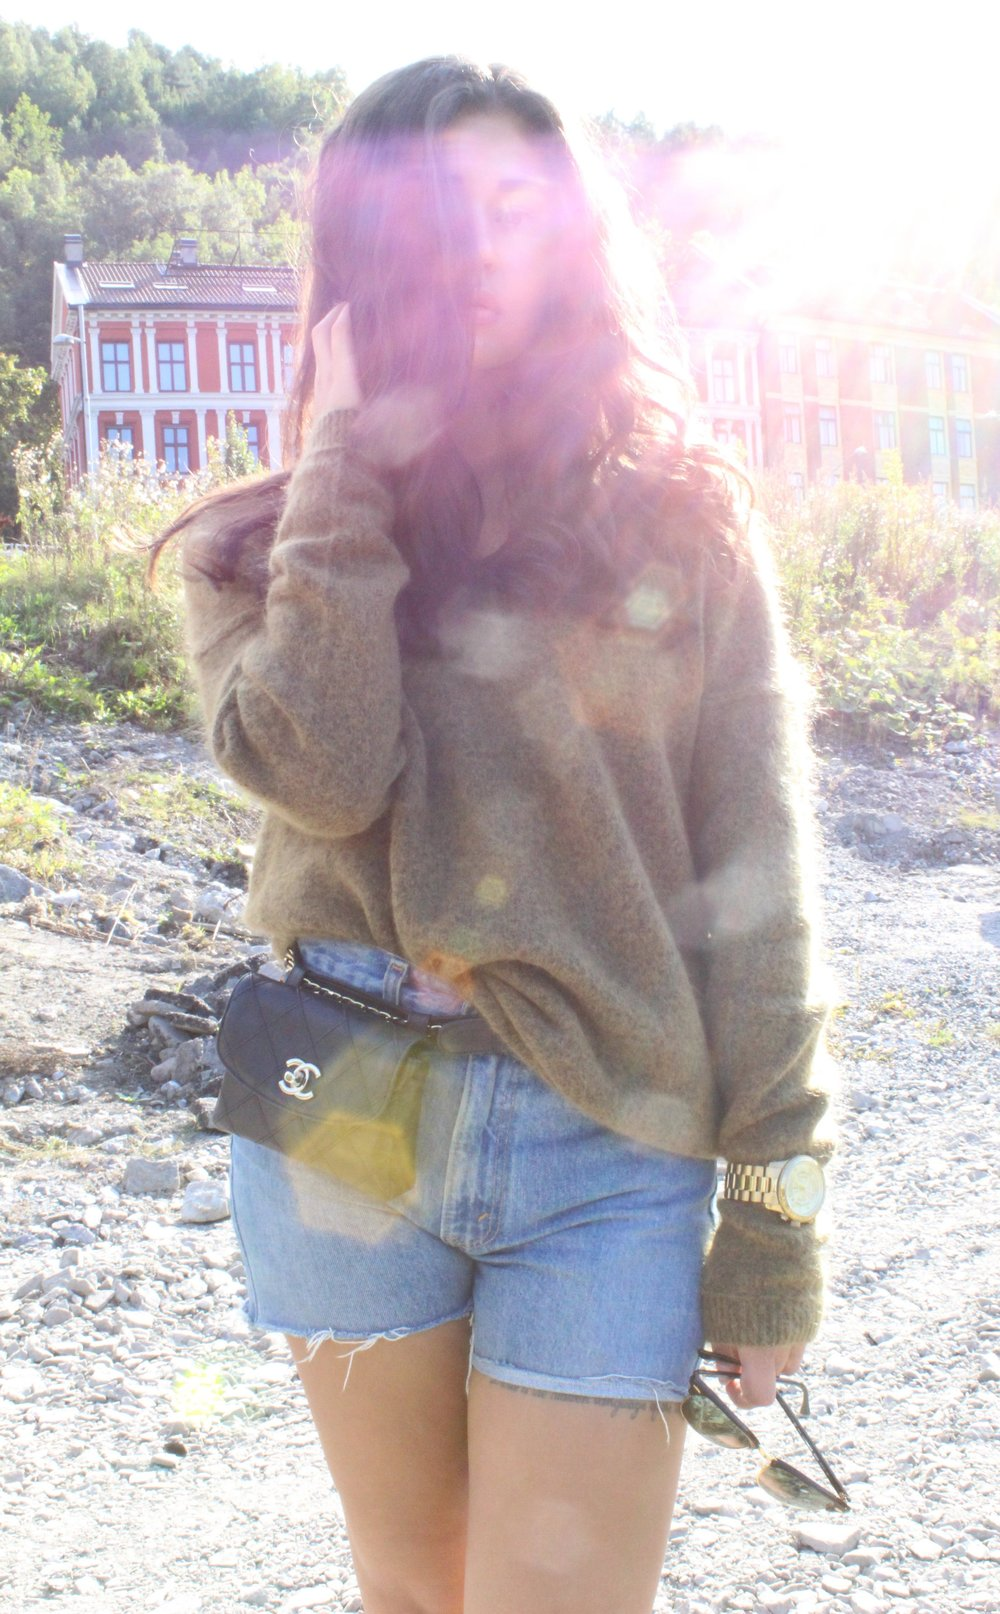 Sweater/   Secondfemale      Shorts/ Levis     Beltbag/ Chanel      Shoes/ Converse       Sunglasses/ Rayban       Watch/ Michael kors